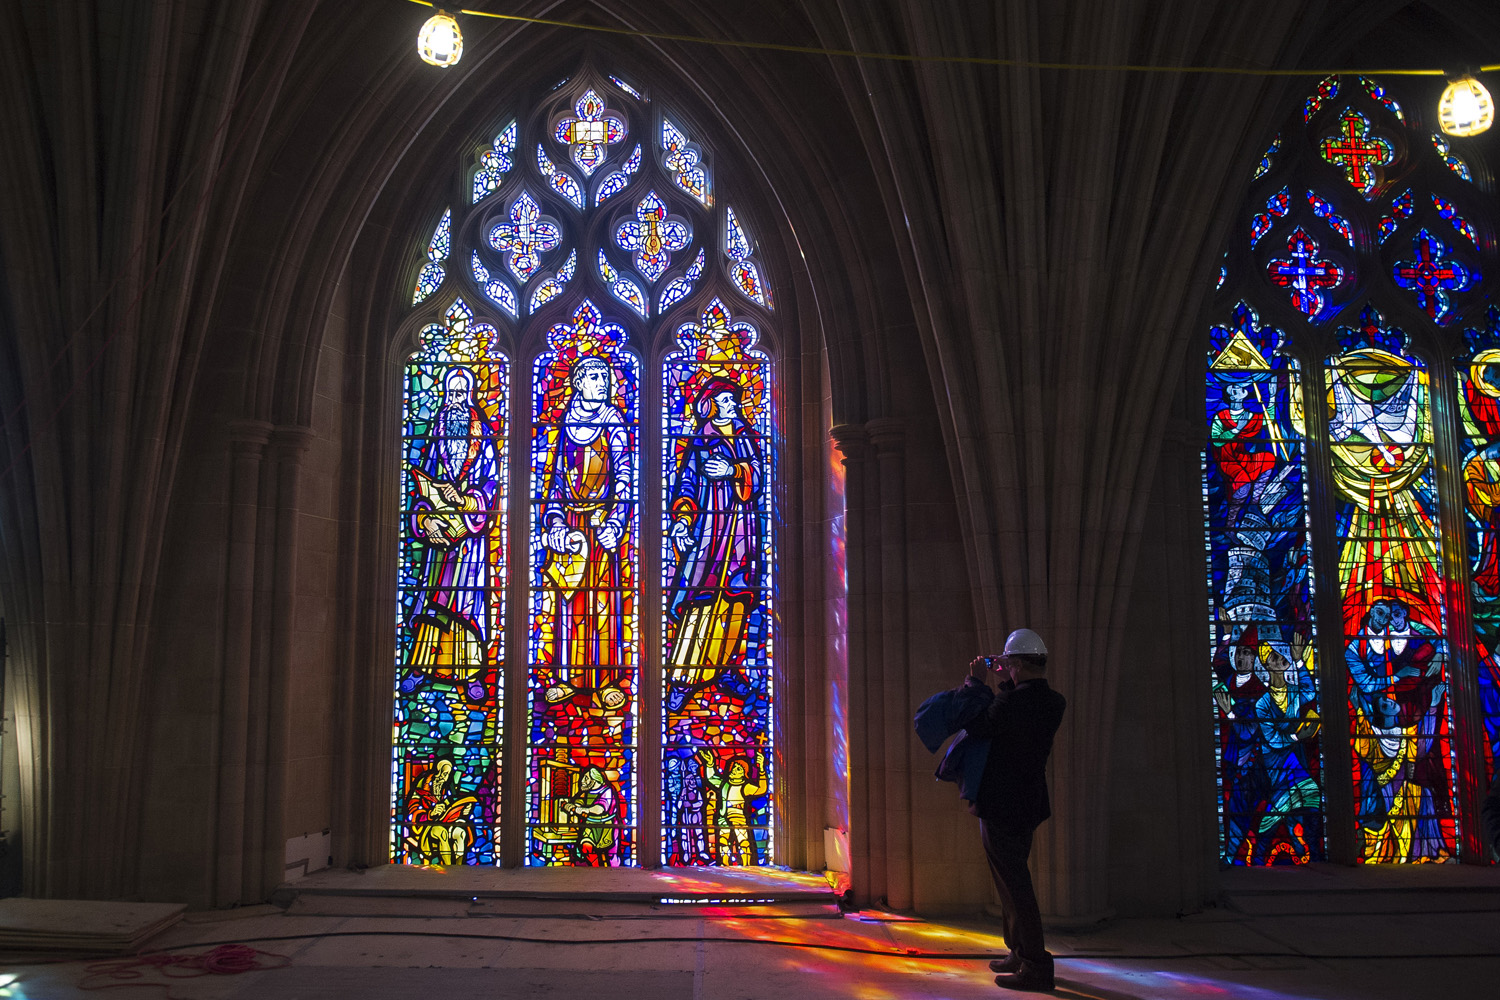 A reporter takes a photograph of a stained glass window at the Washington National Cathedral. (Cliff Owen/AP)